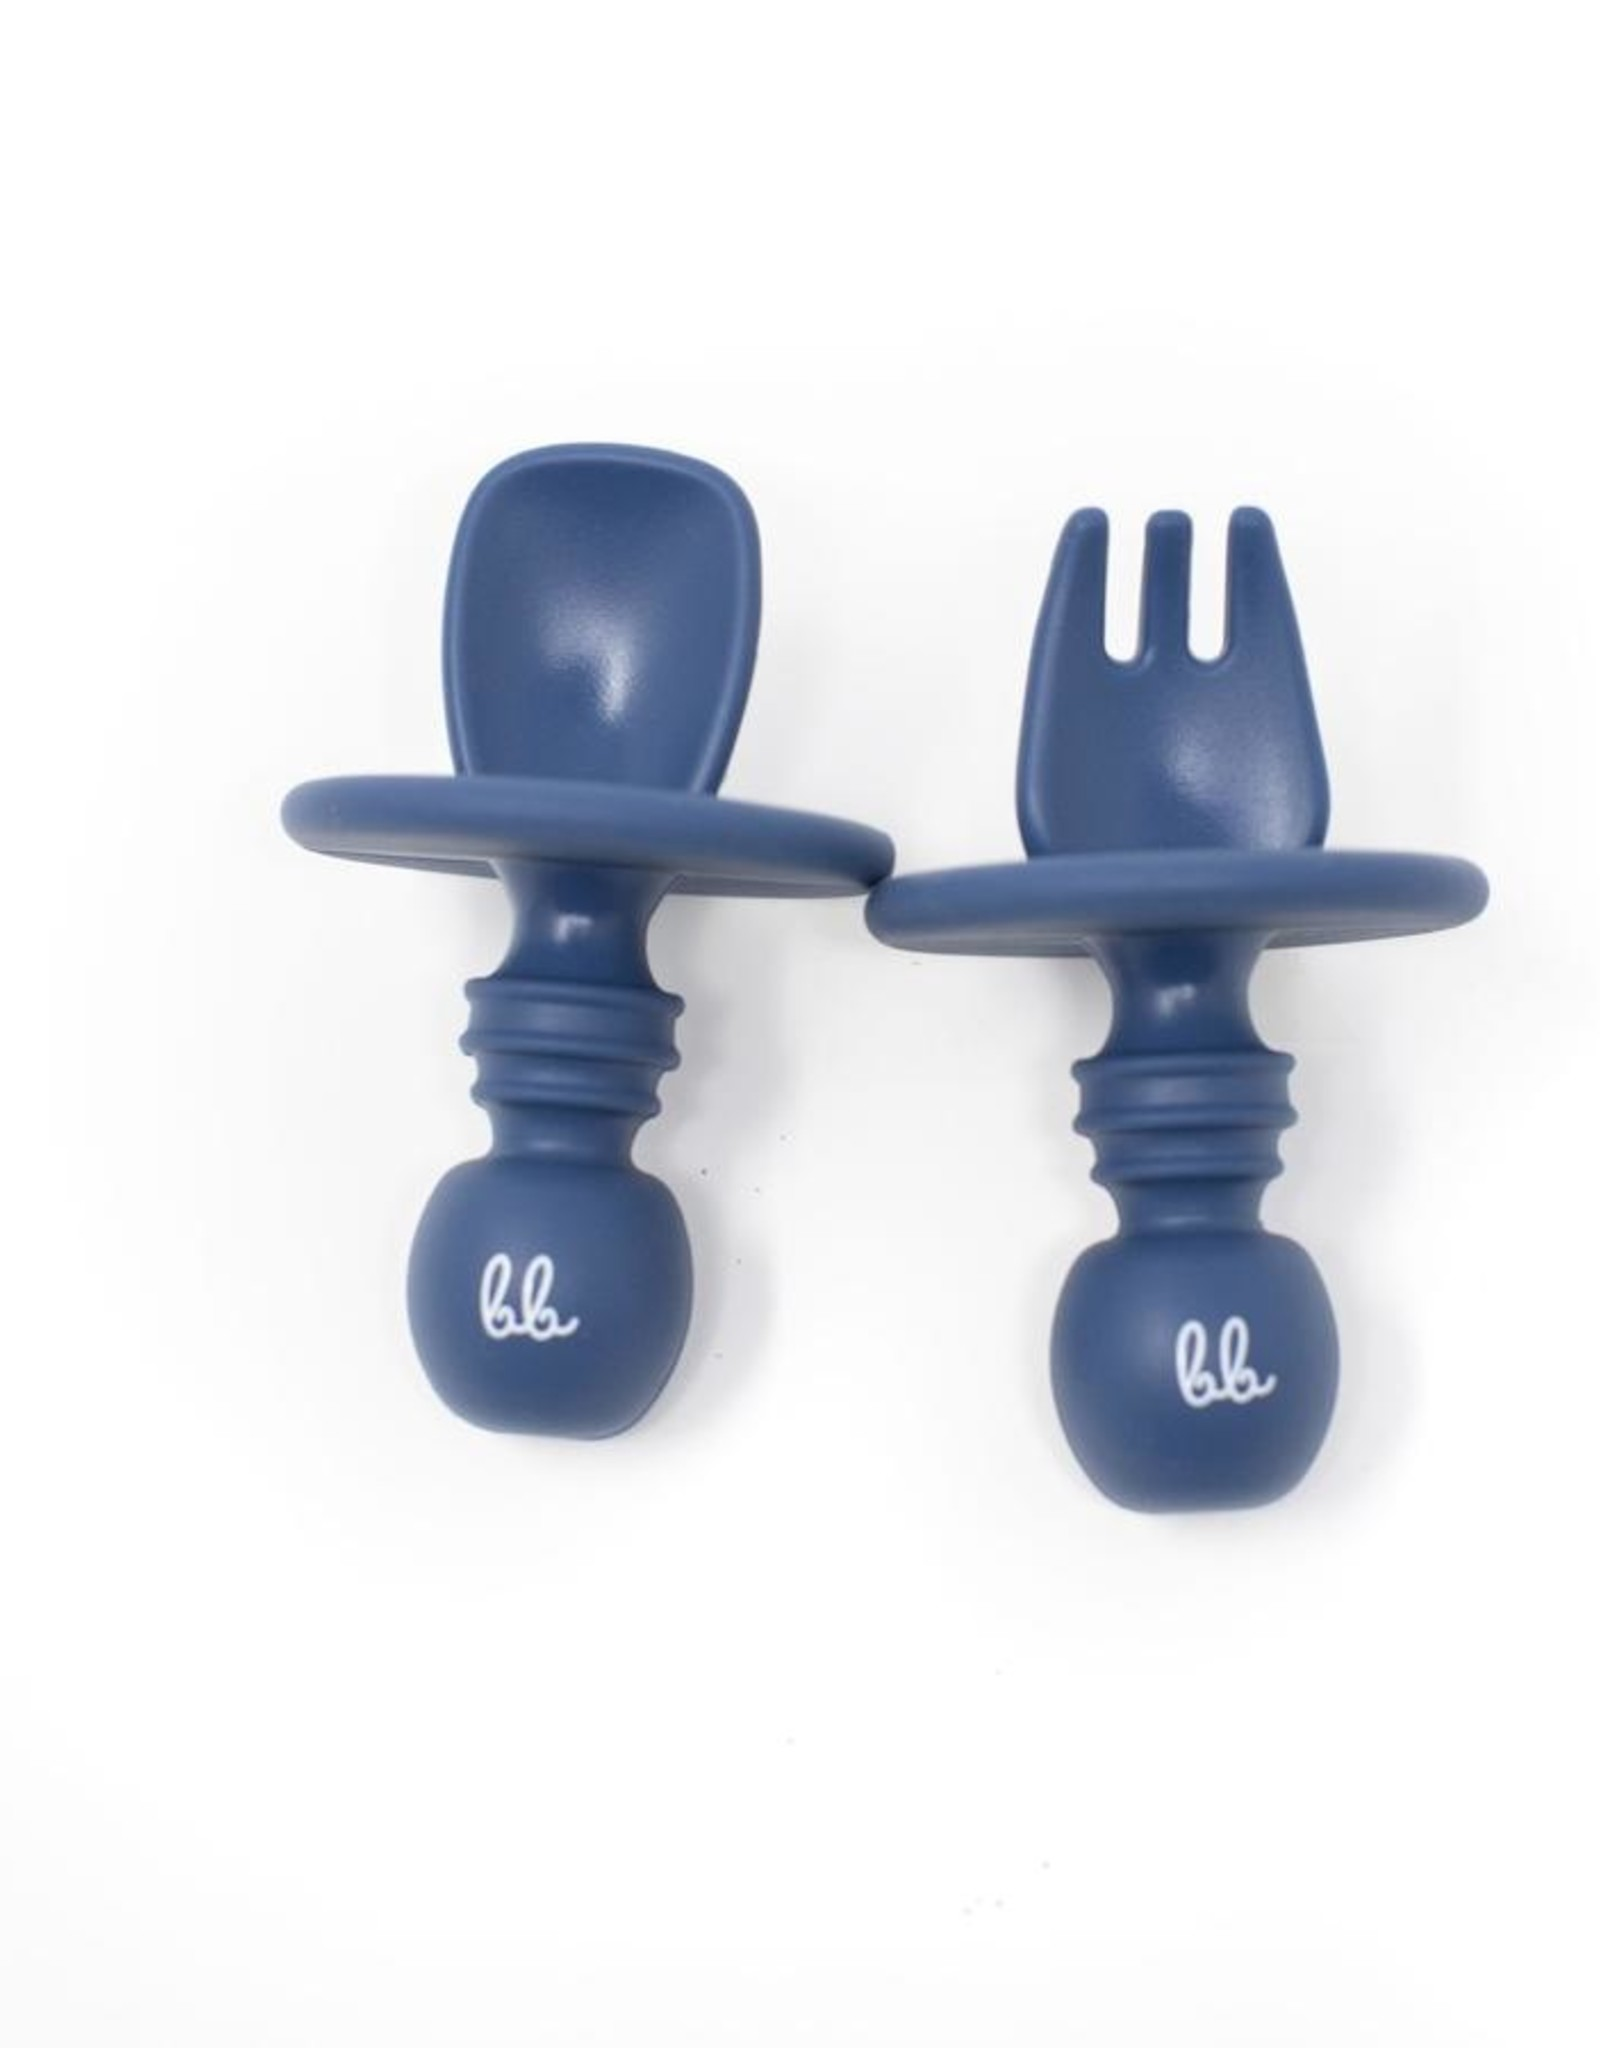 Three Hearts Silicone Spoon & Fork Set (Silitensils by Baby Bar)